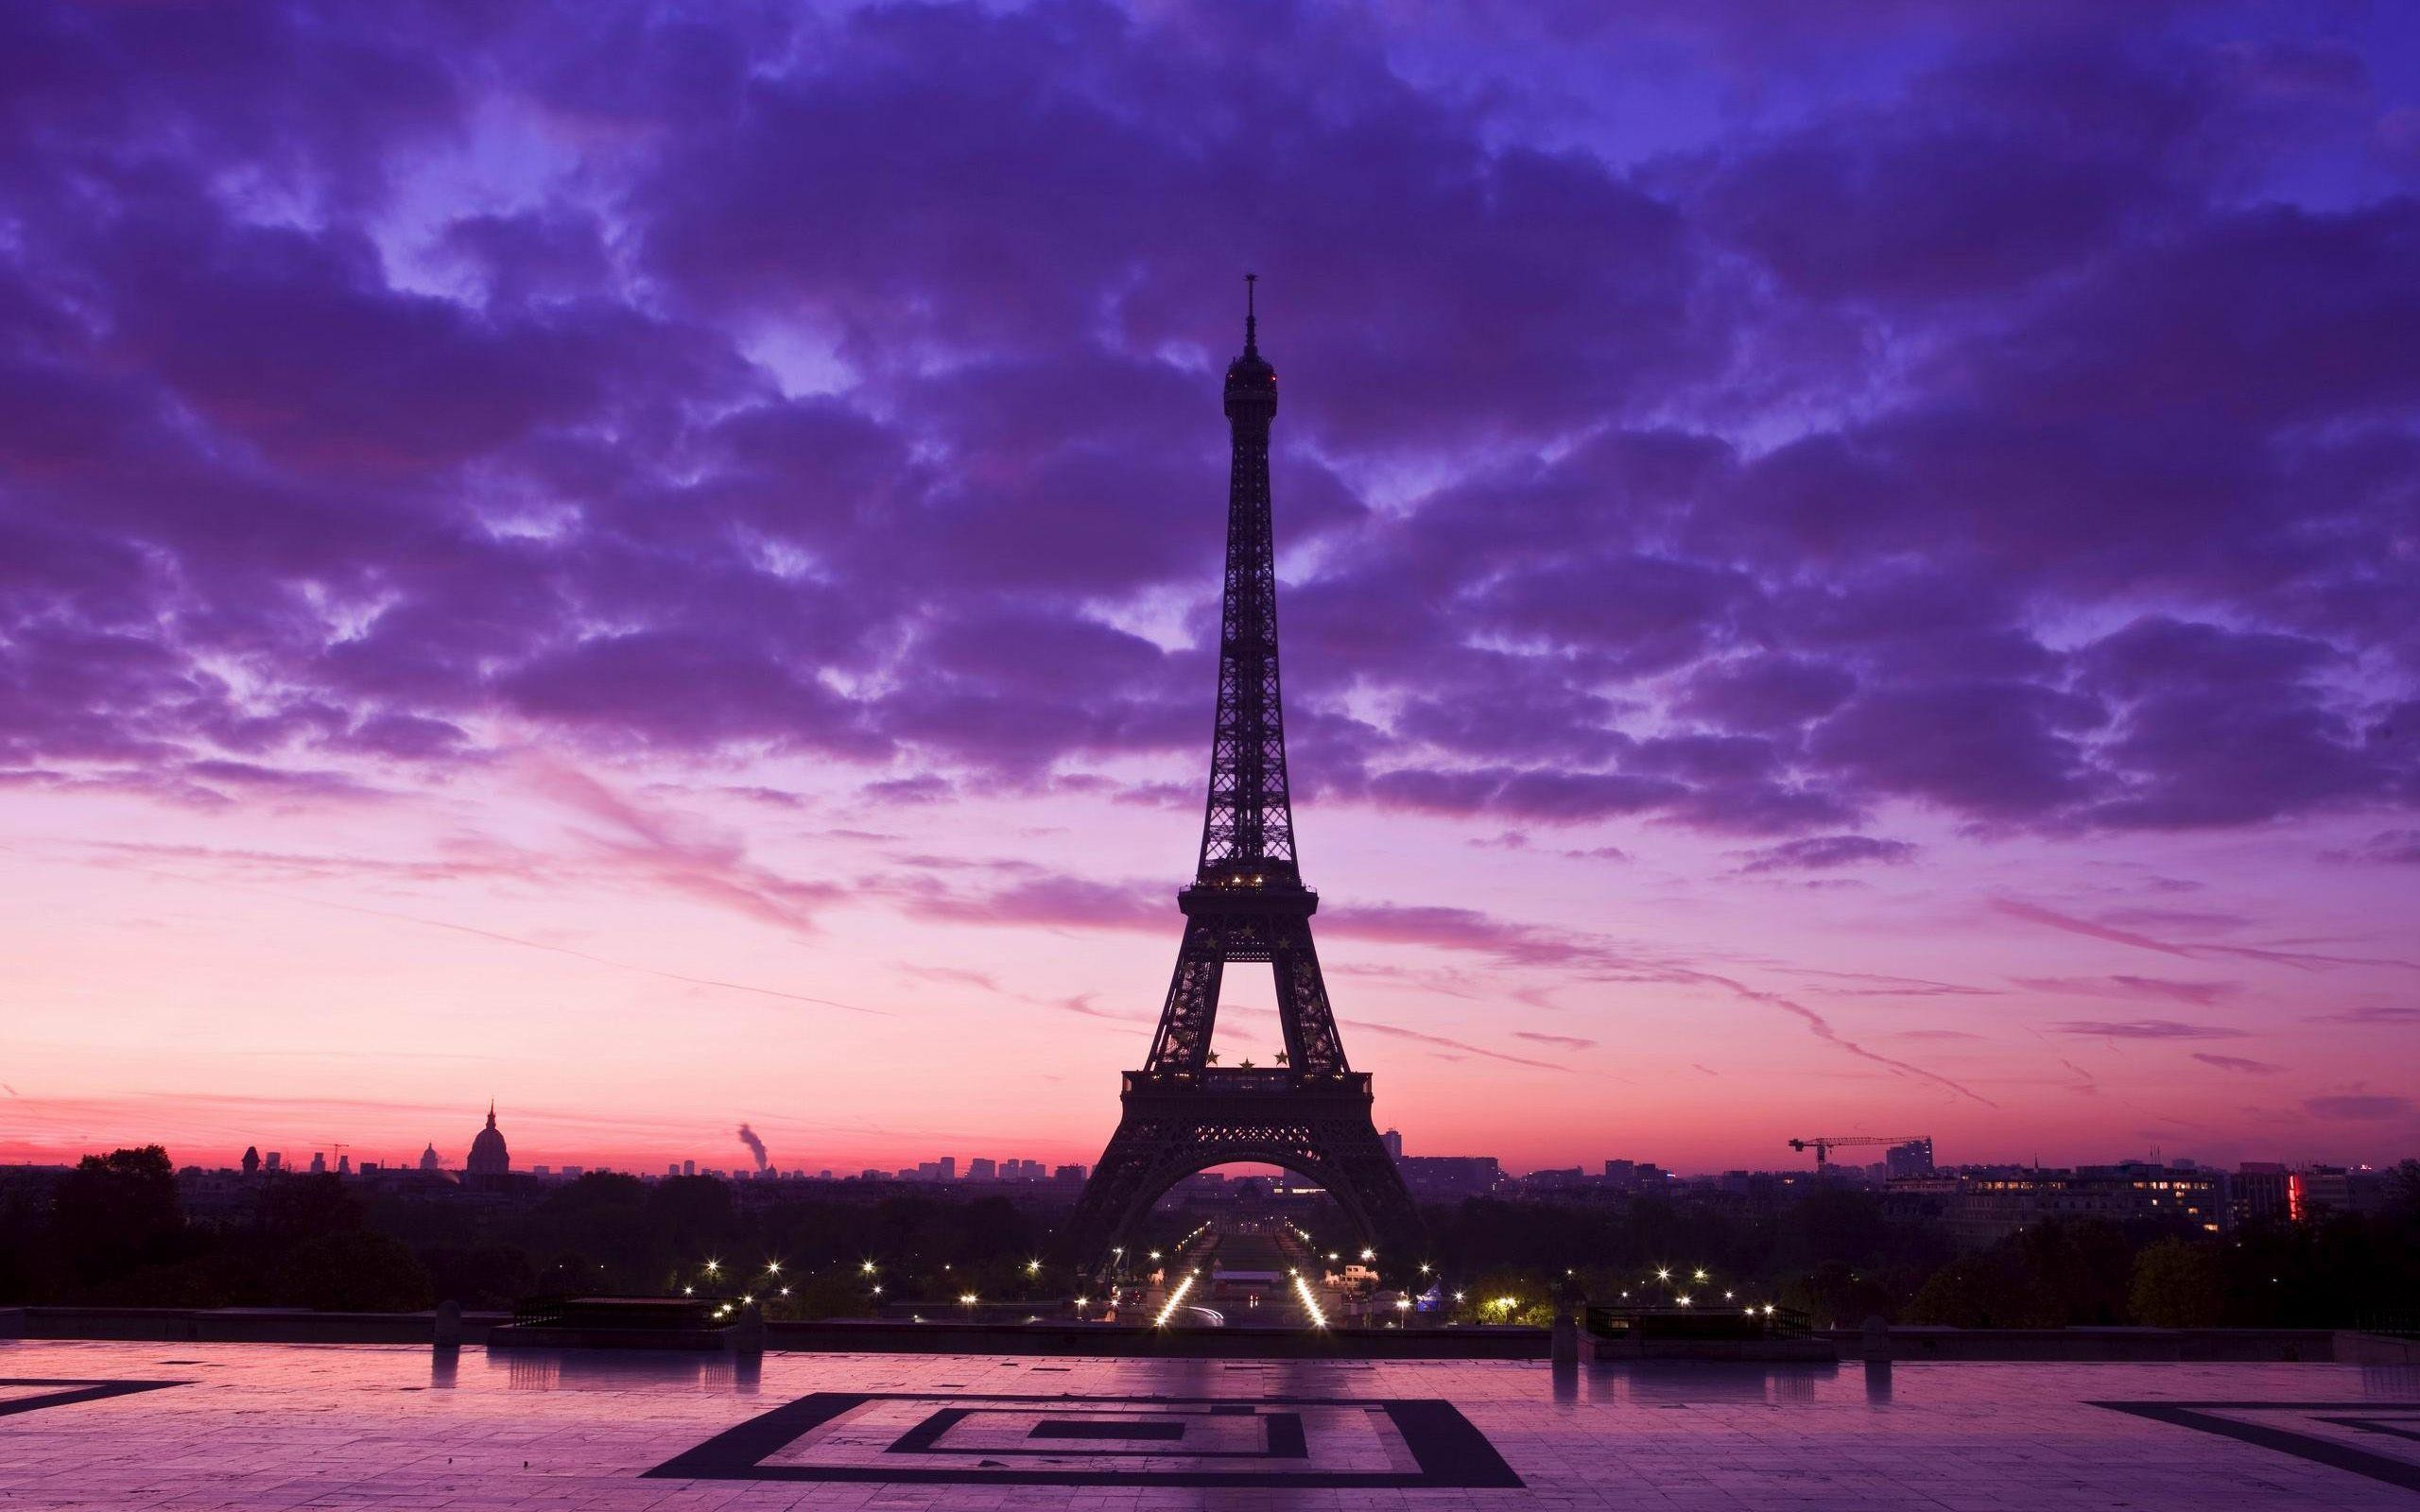 Cute Paris Wallpaper Girly 48 Images